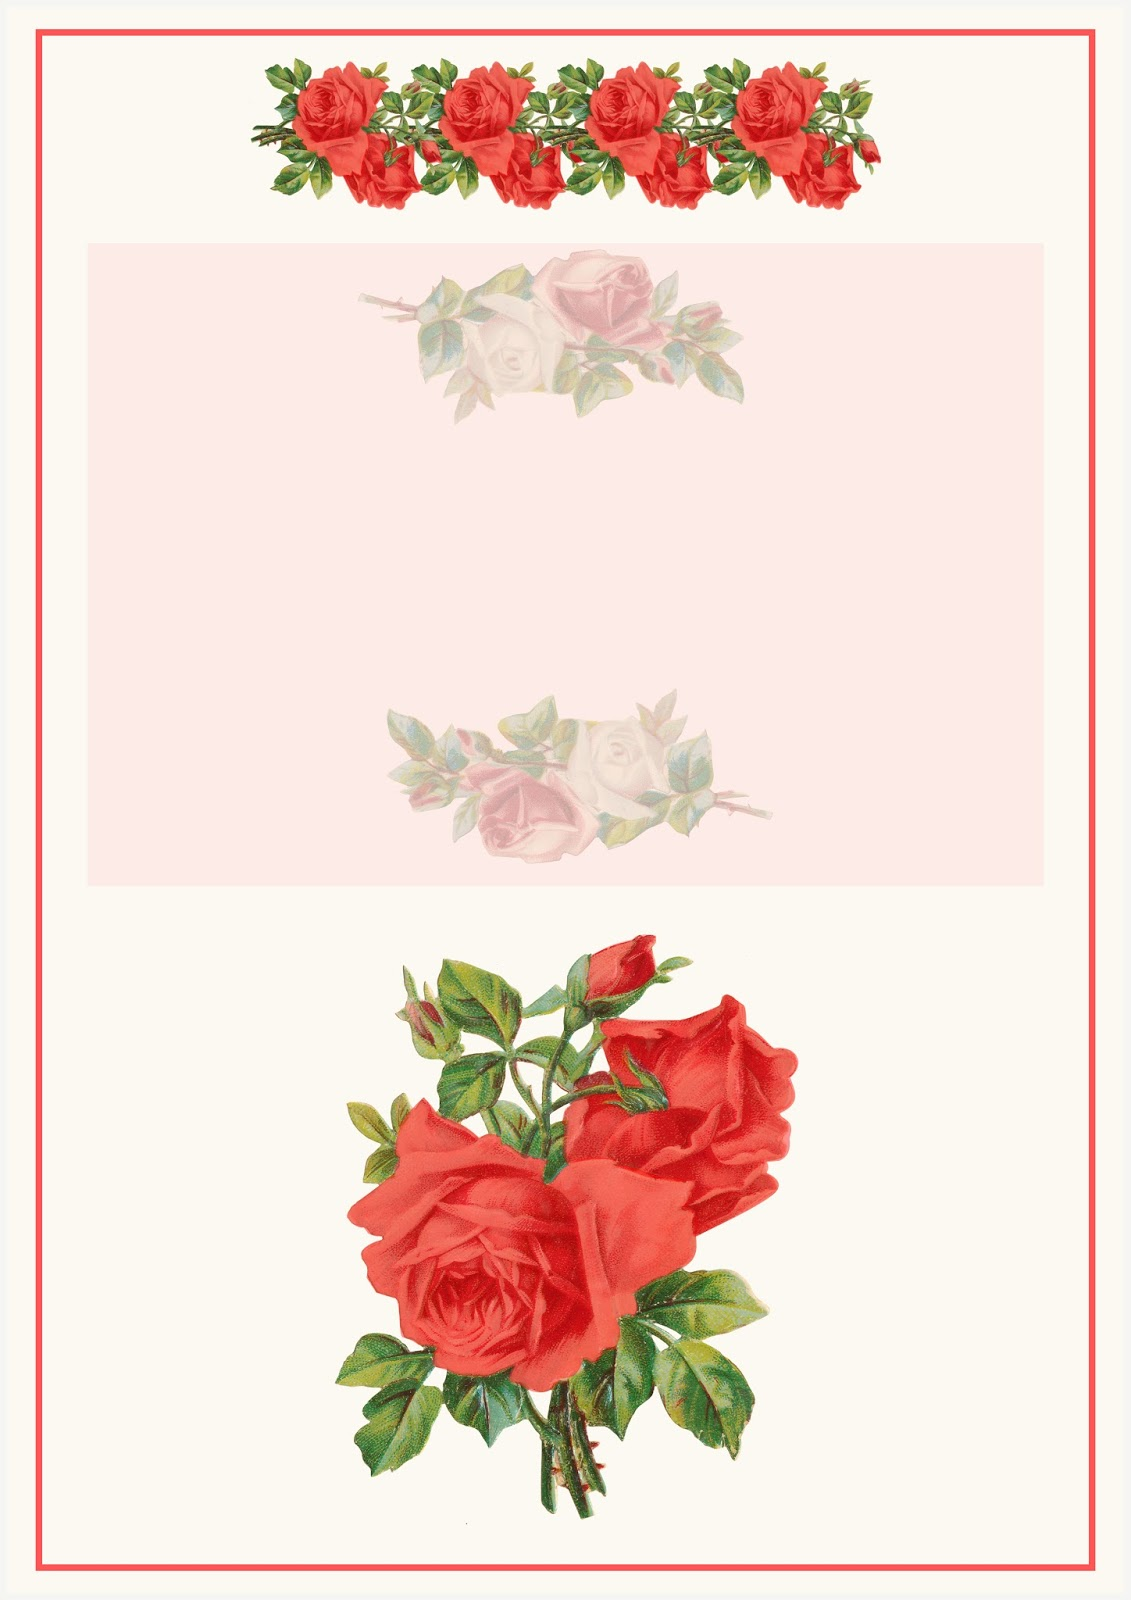 Free digital rose scrapbooking paper + printable stationery - Rosenpapier